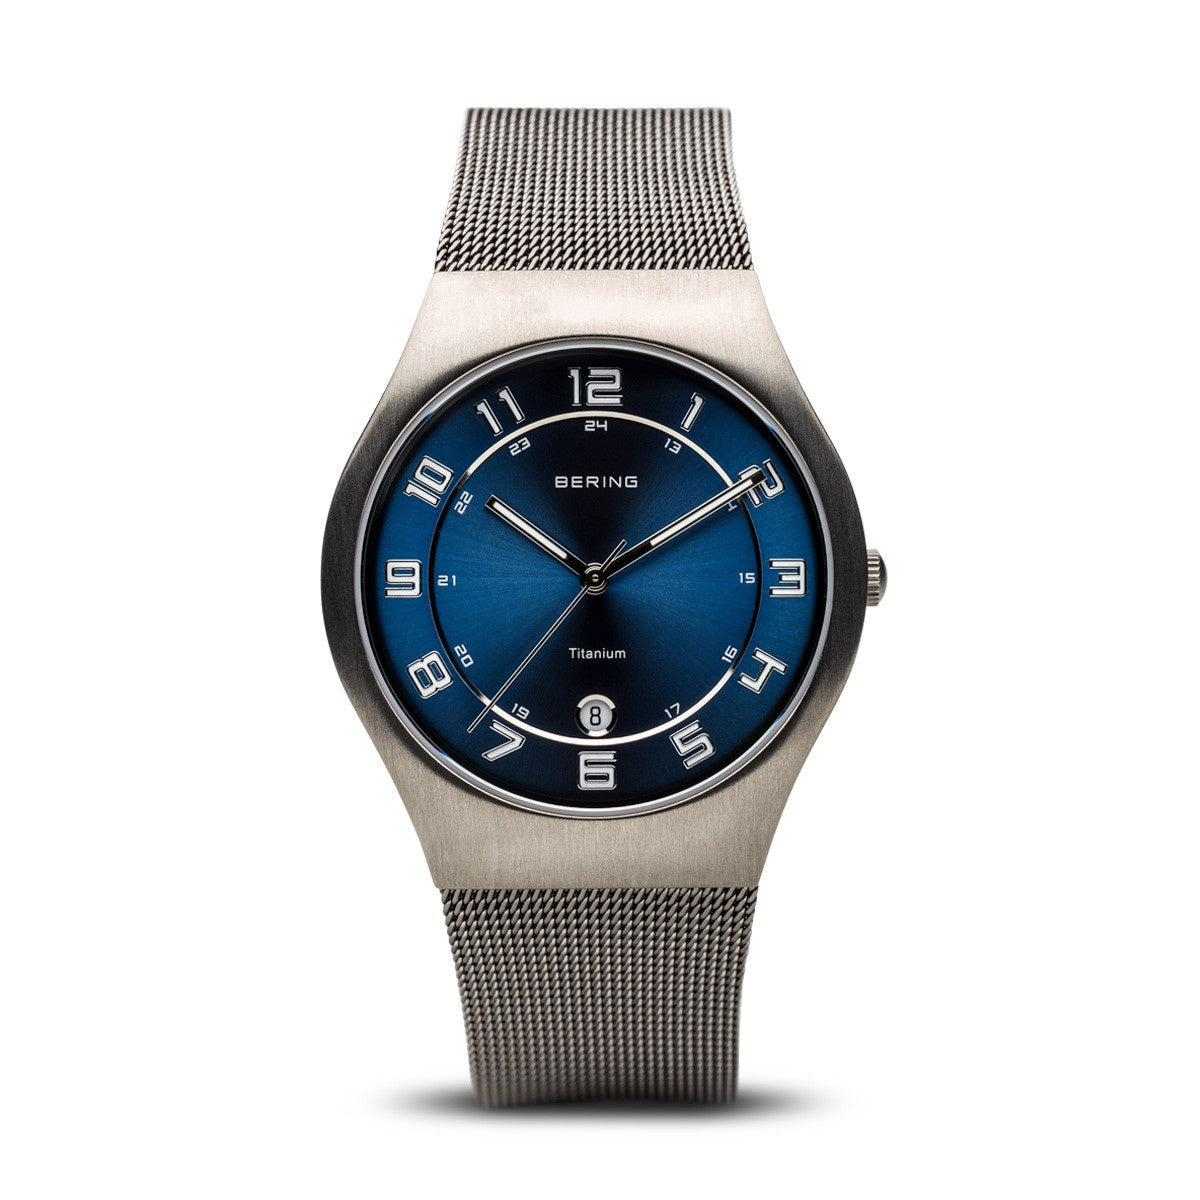 Bering Mens Classic Titanium Brushed Grey Watch 11937-078 - Robert Openshaw Fine Jewellery